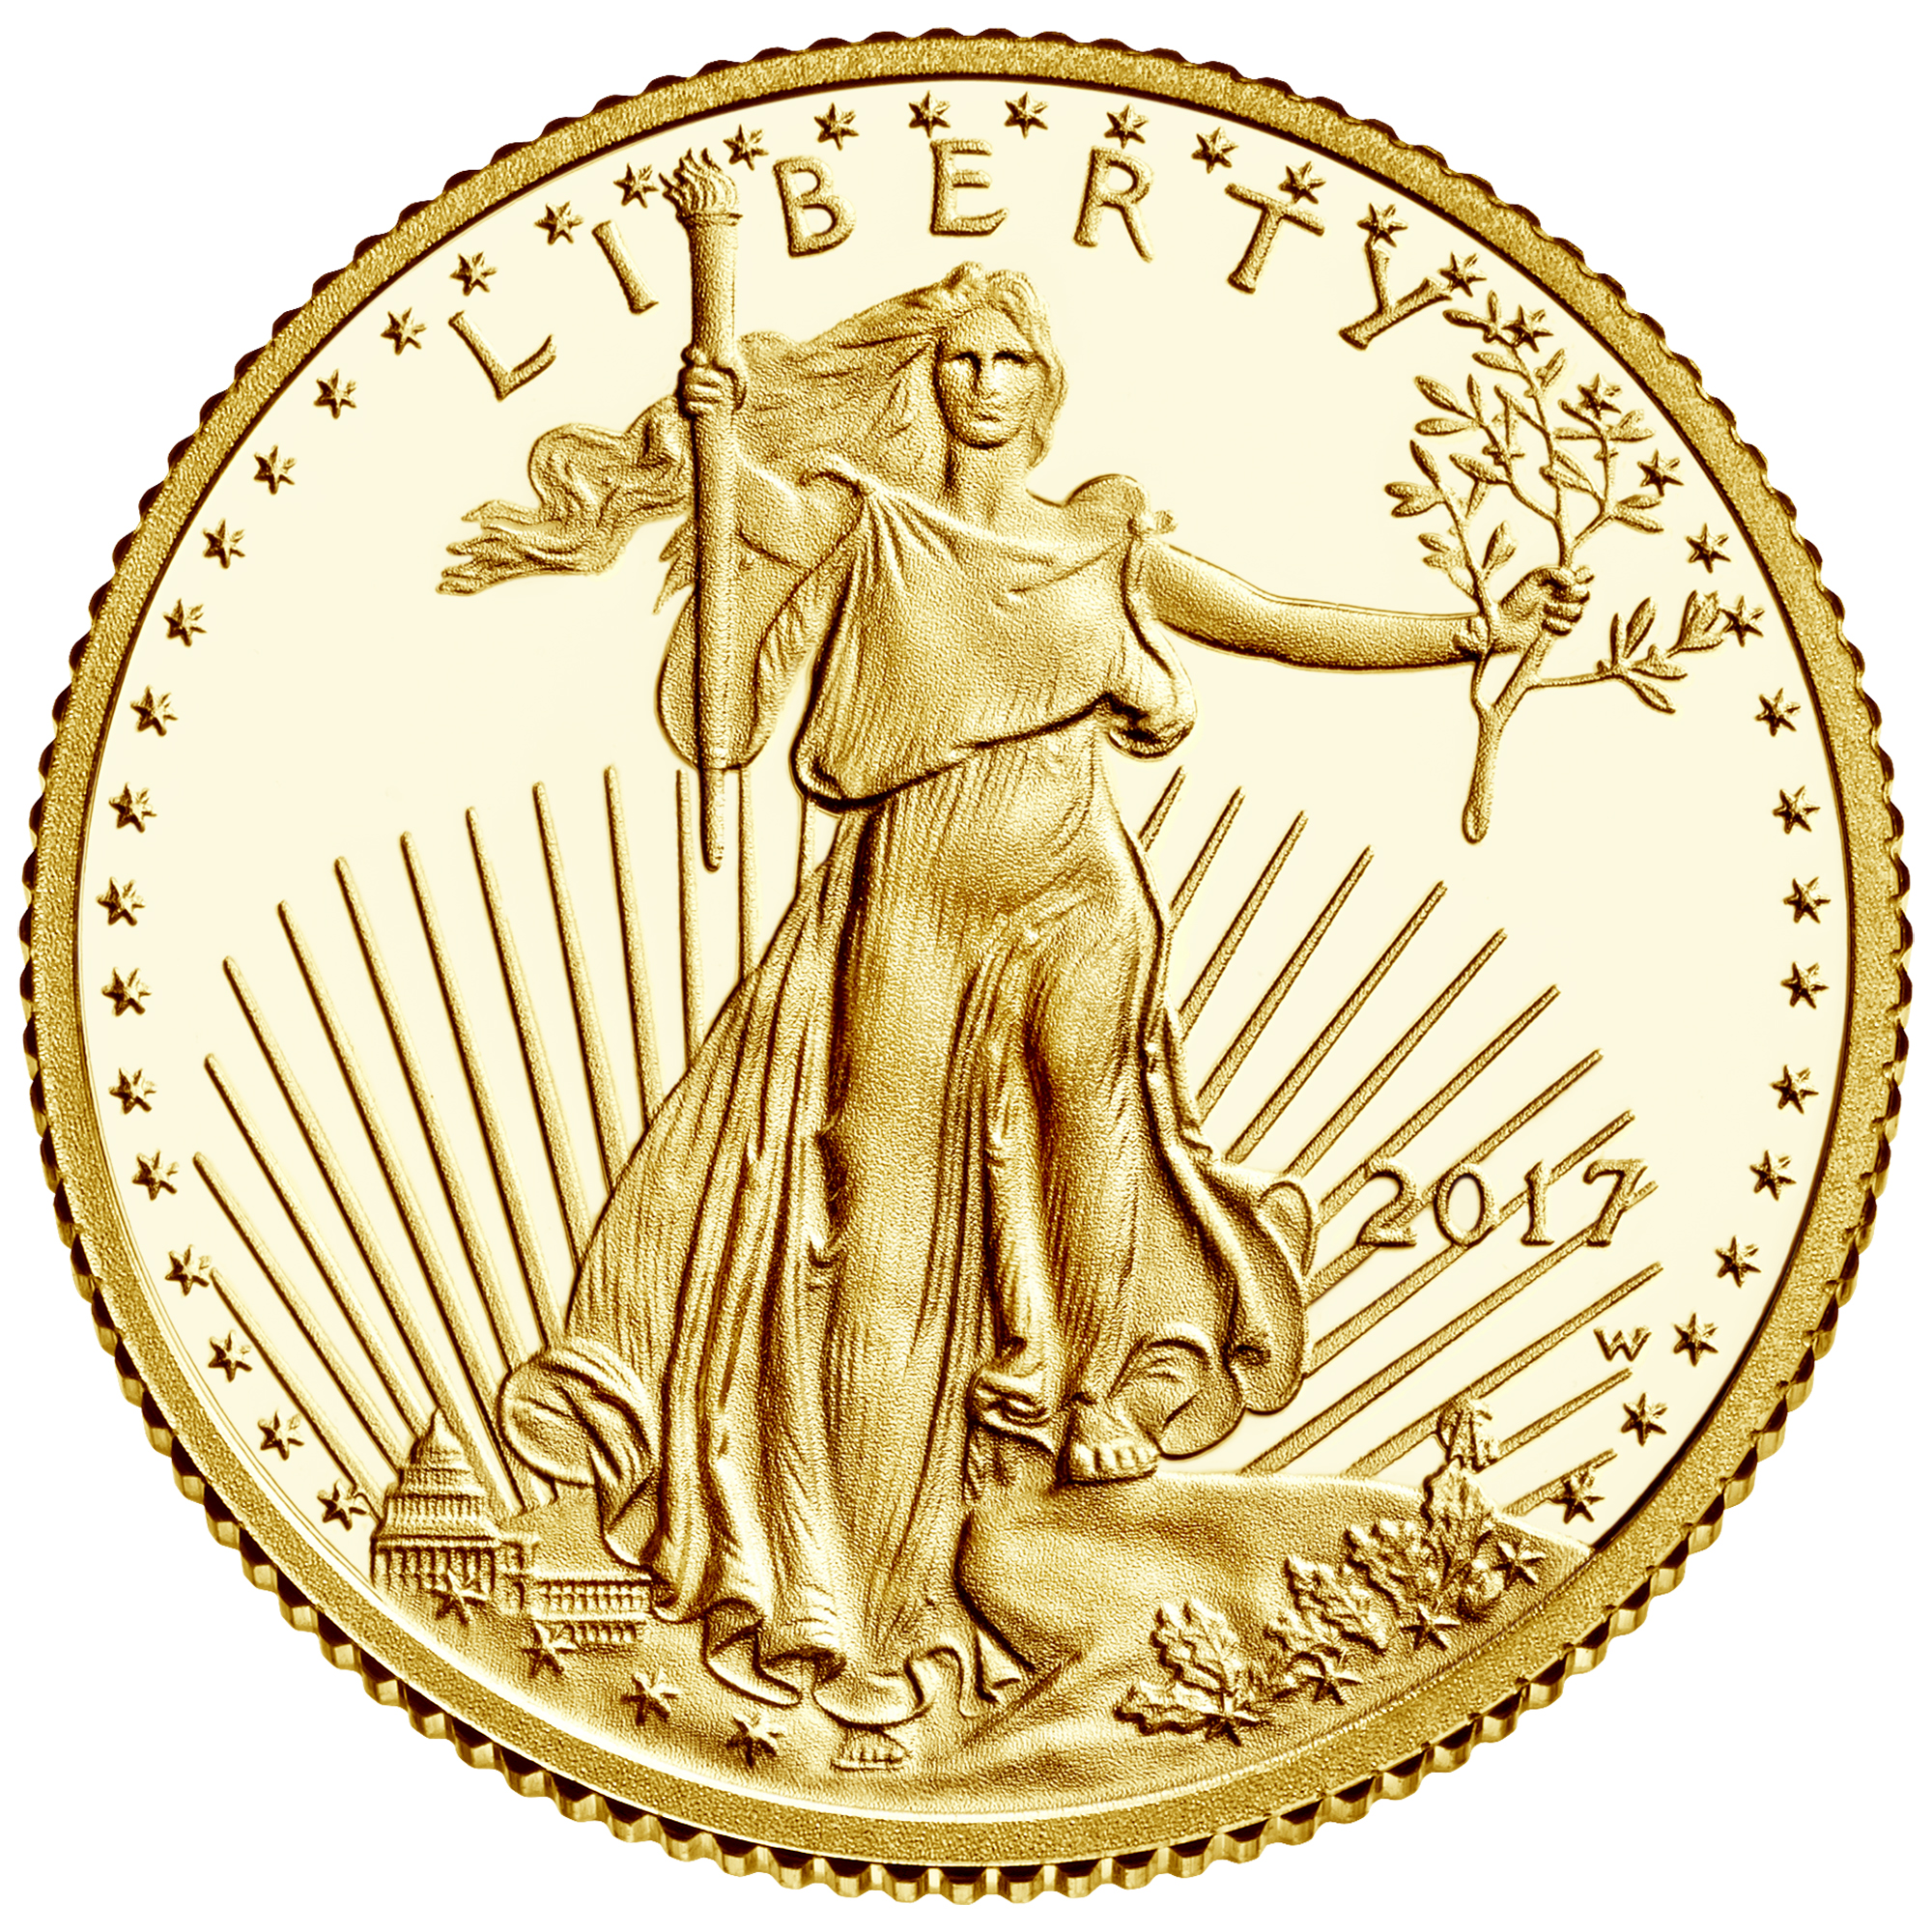 Photo of gold liberty coin from https://www.usmint.gov/wordpress/wp-content/uploads/2017/03/2017-american-eagle-gold-tenth-ounce-proof-coin-obverse.jpg